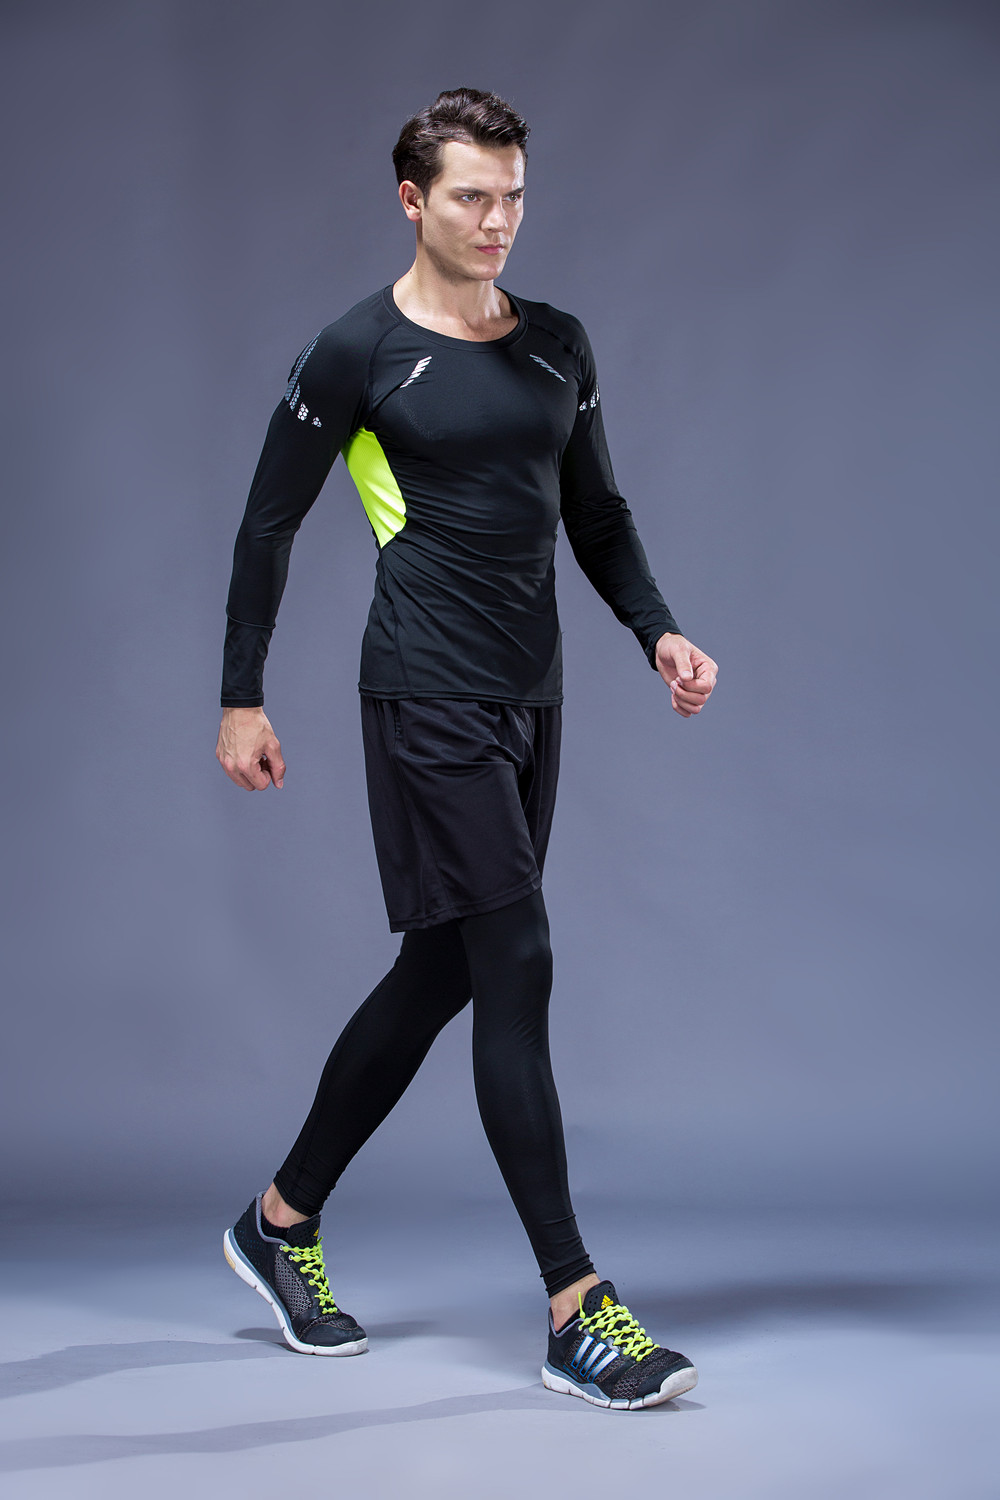 Foto2 from the left on the men 5 pcs compressions clothes for gym. Men's 5 pcs compression tracksuit sports